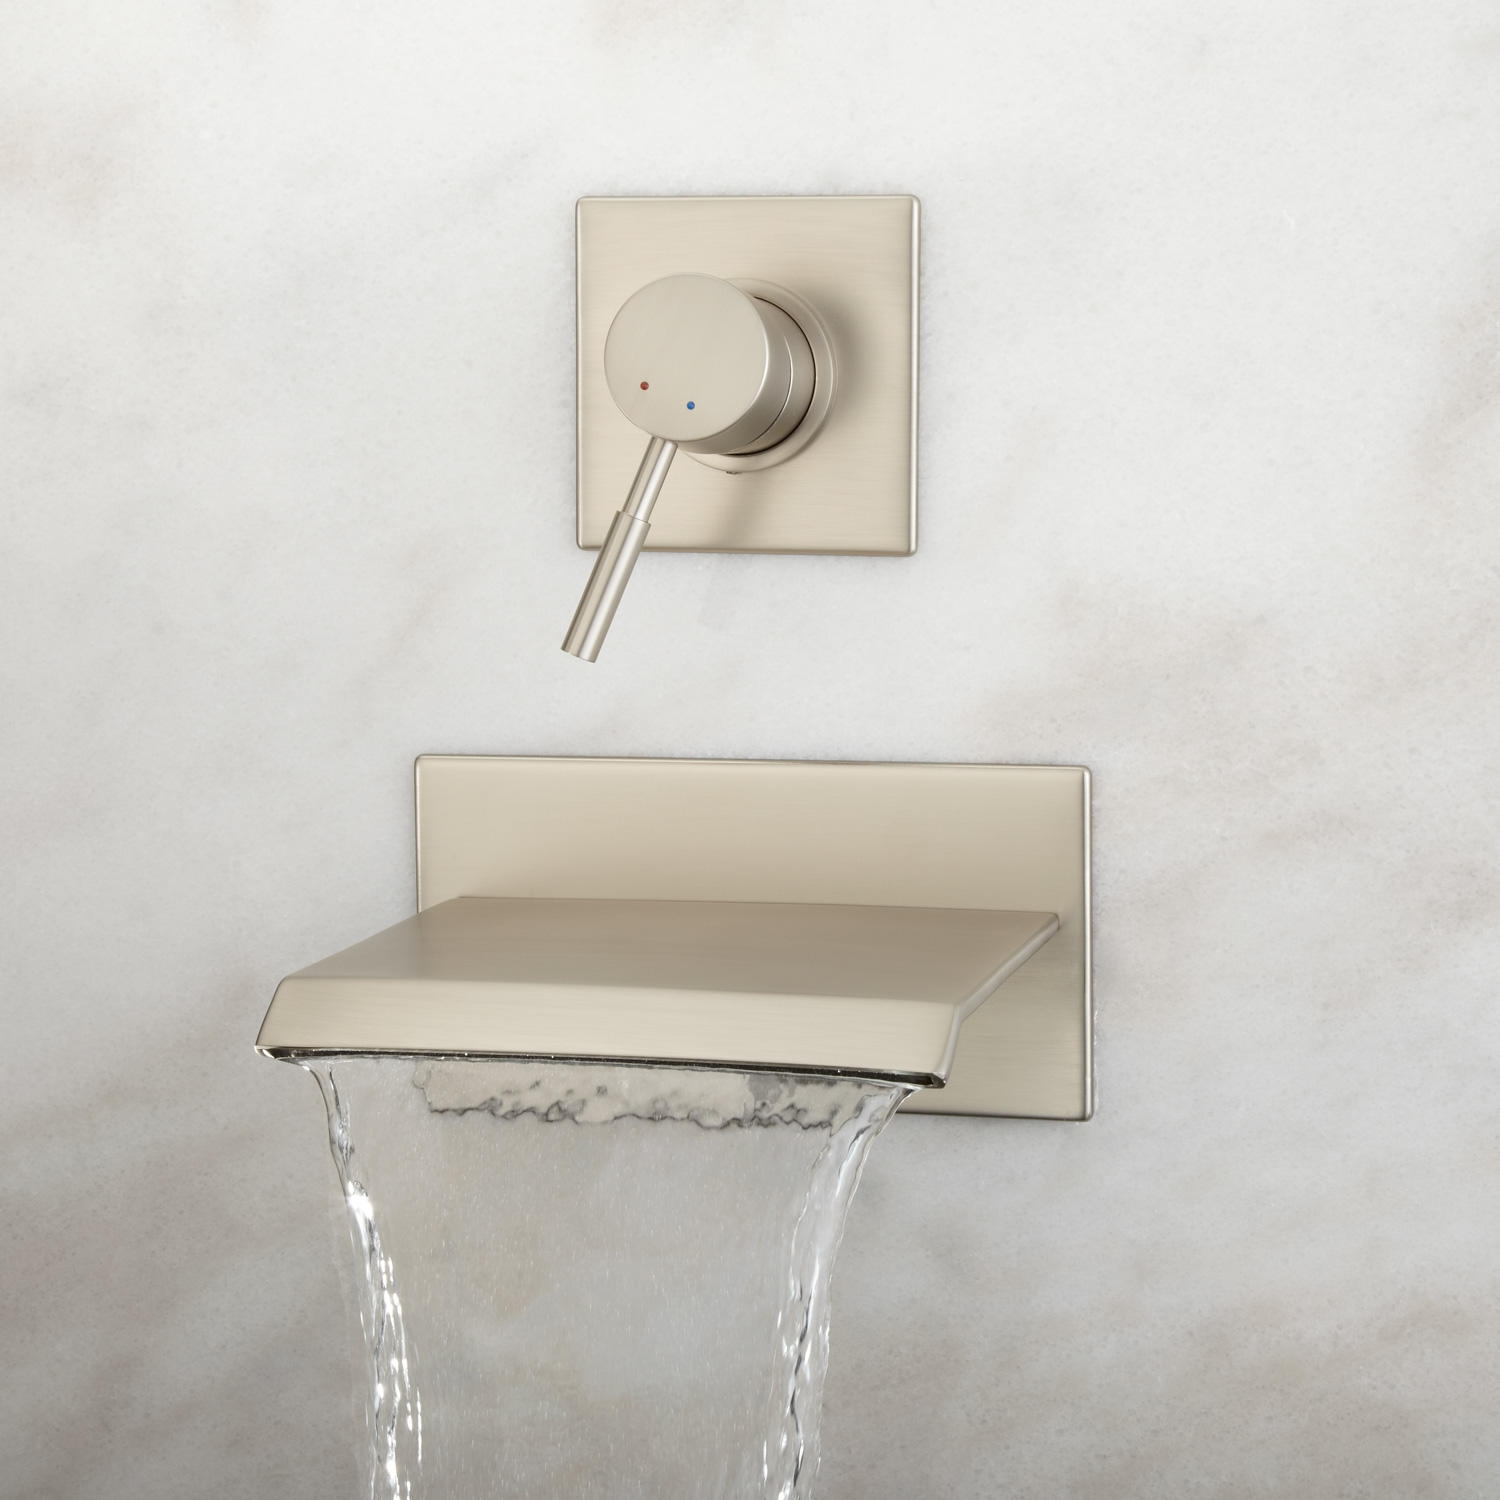 Ideas, tub faucet buying guide inside dimensions 1500 x 1500  .